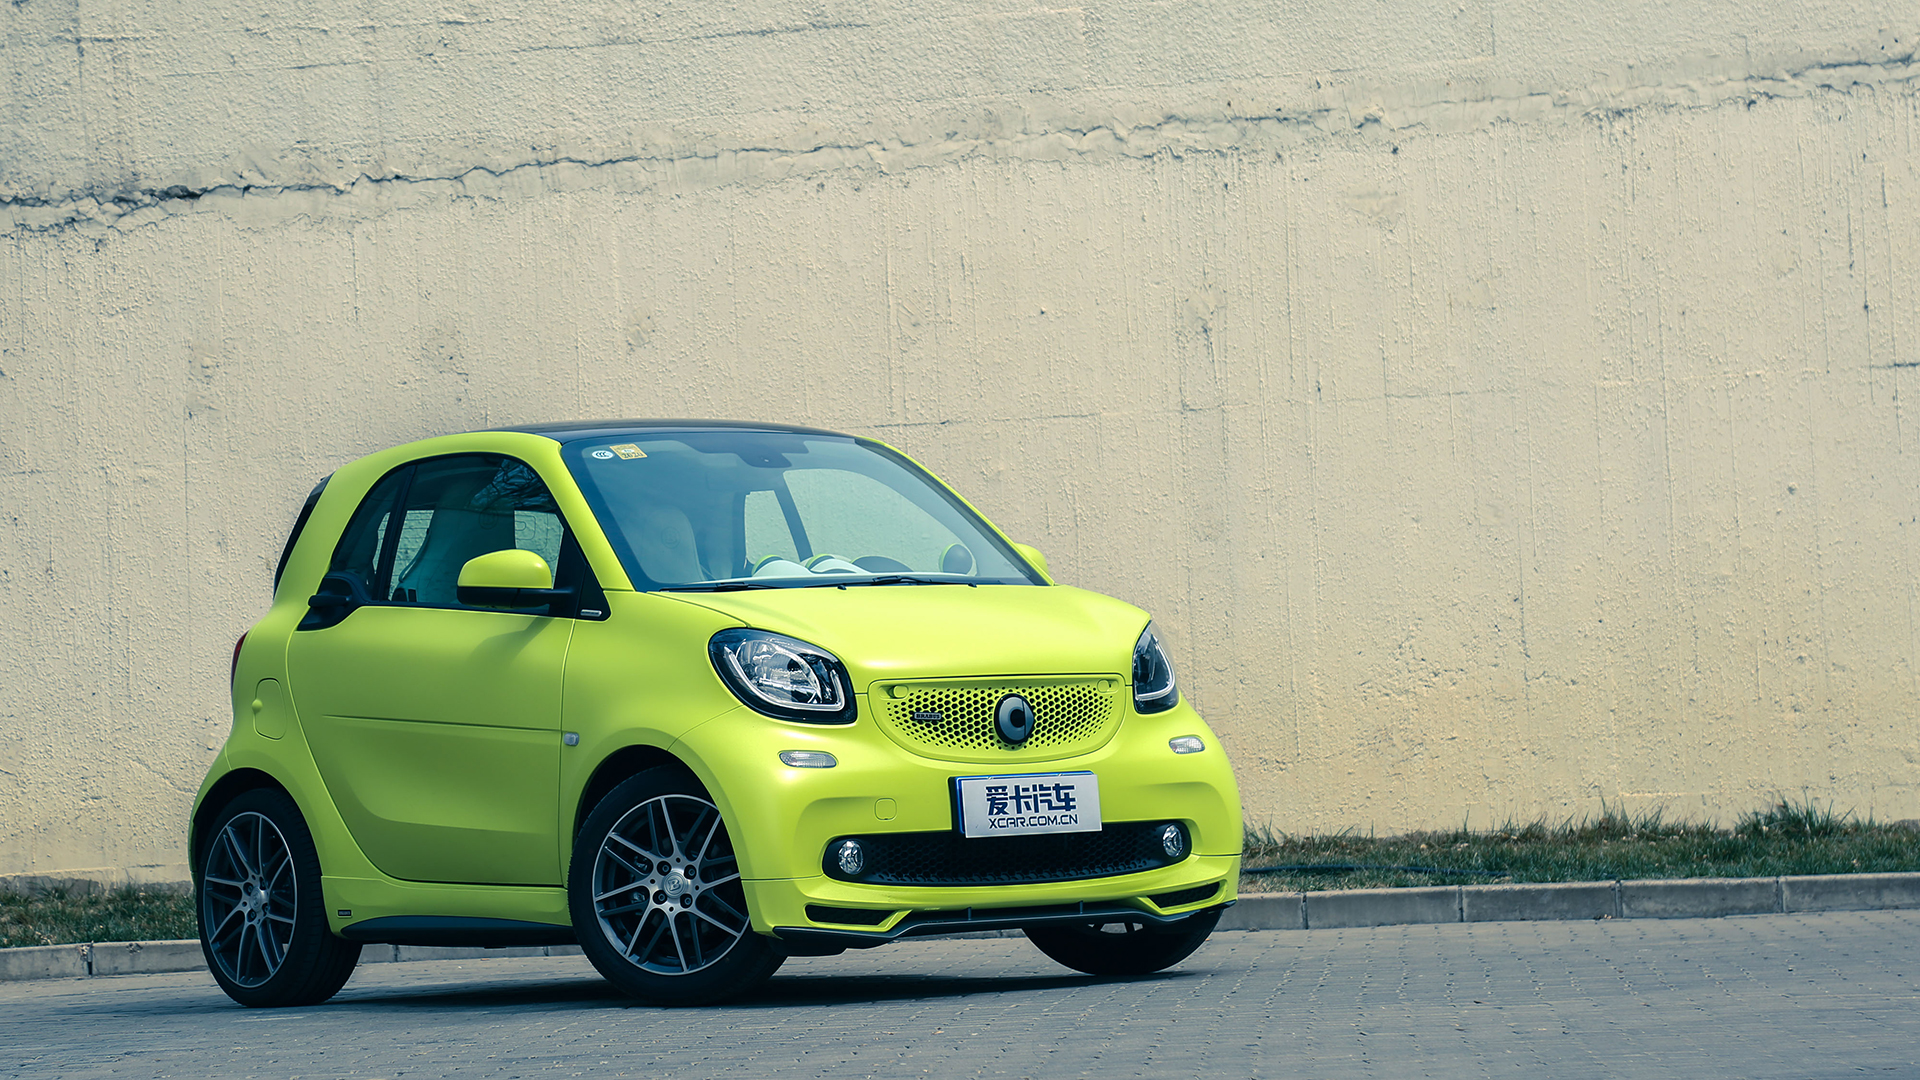 smart fortwo 0.9T BRABUS tailor made专属定制硬顶版